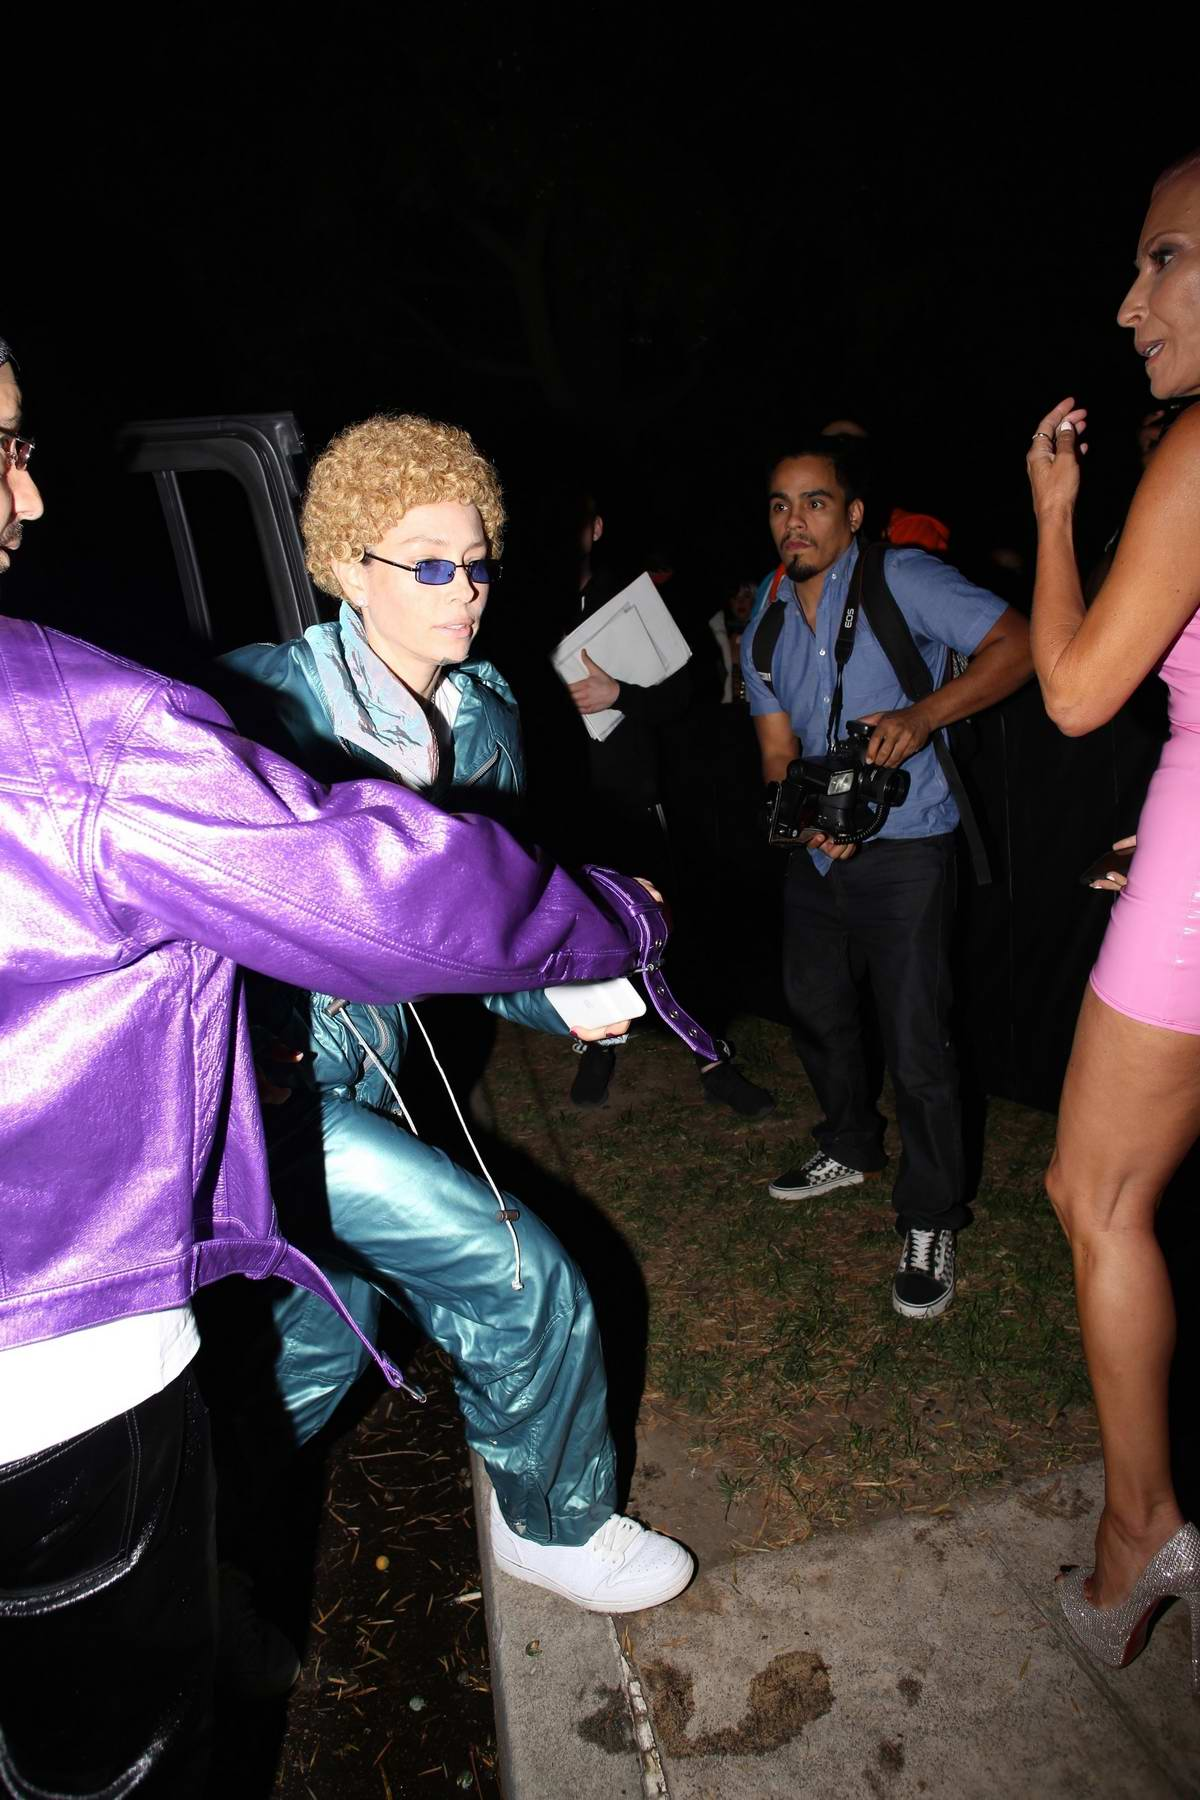 Jessica Biel dressed as Justin Timberlake attends the Casamigos Halloween Party 2019 in Beverly Hills, Los Angeles